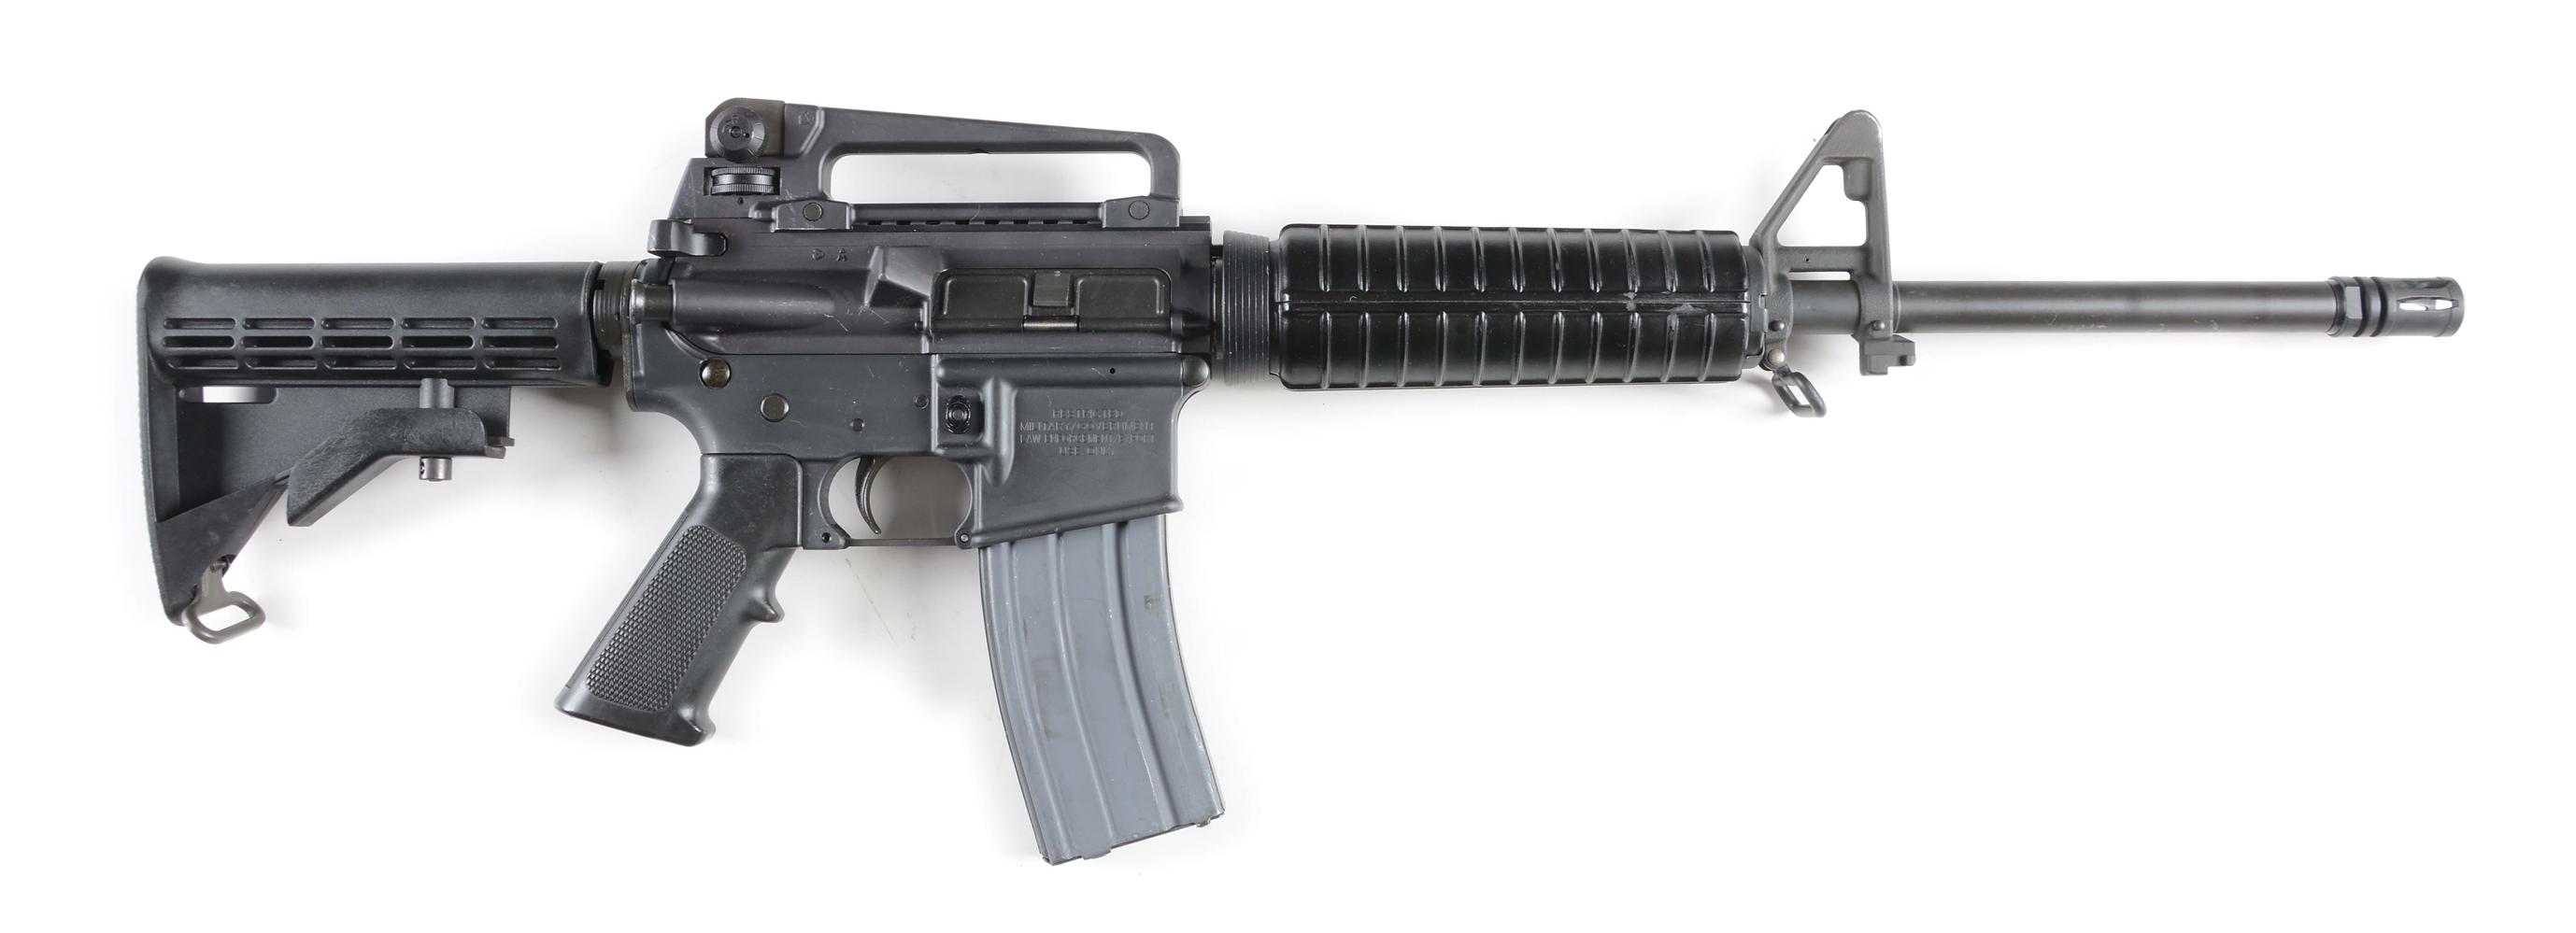 (M) Canadian Colt AR-15A3 Tactical Carbine.